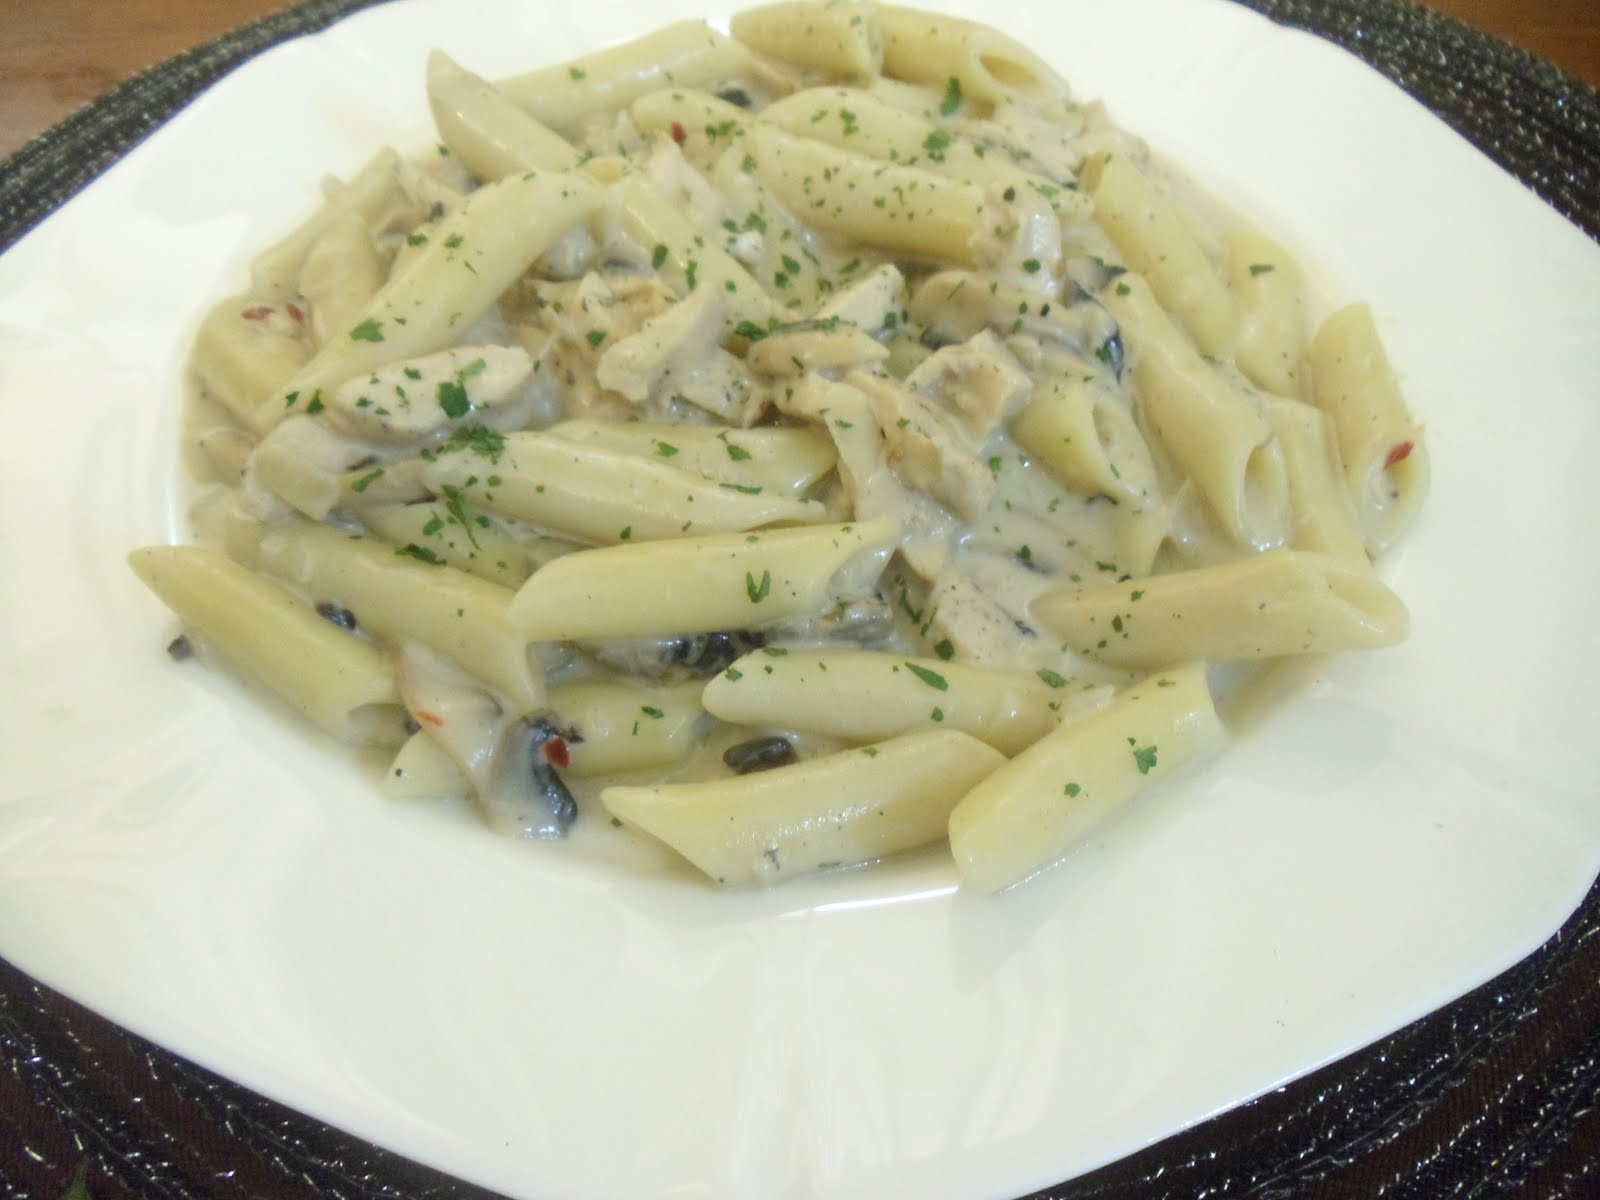 Cheries Stolen Recipes Chicken And Mushroom Pasta In White Sauce